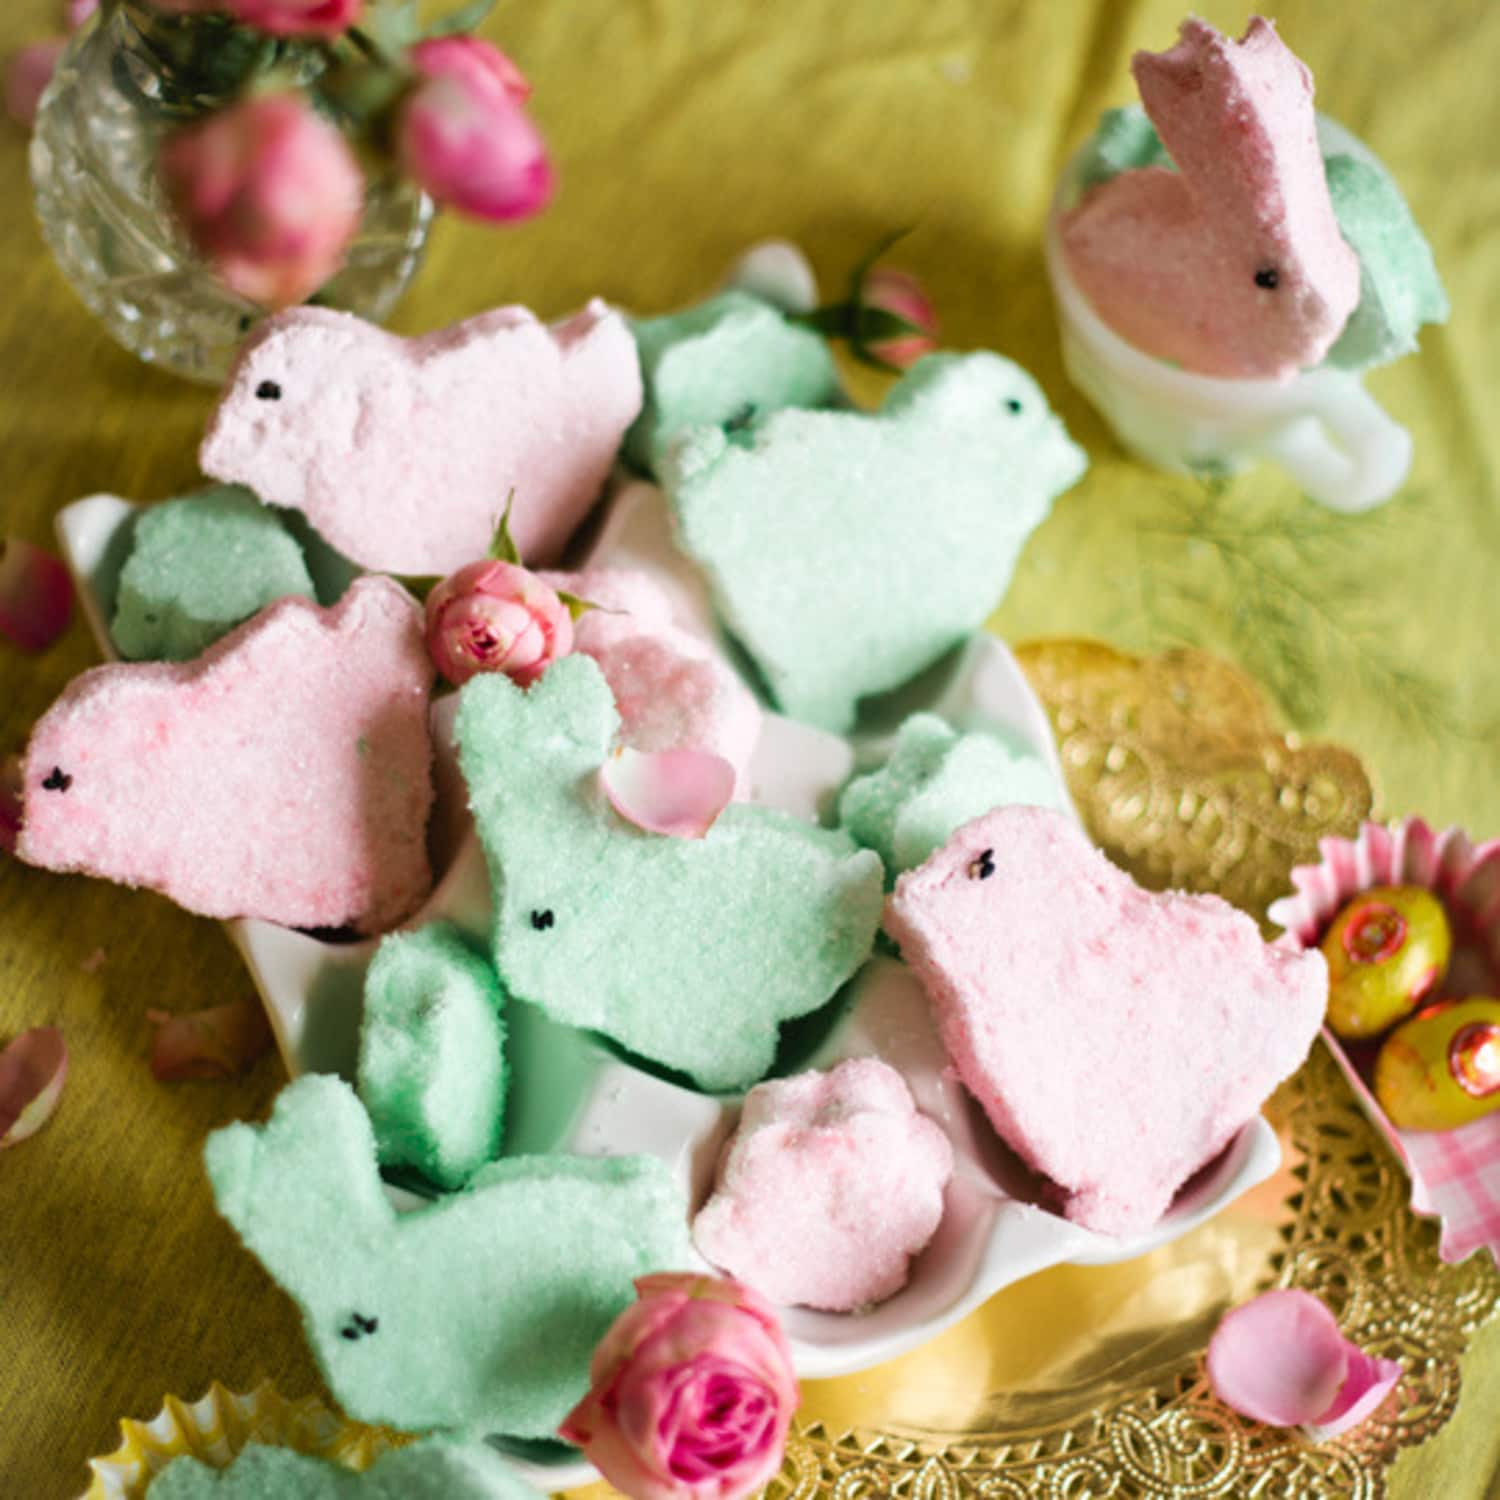 Easter Things: How To Make Marshmallow Peeps At Home